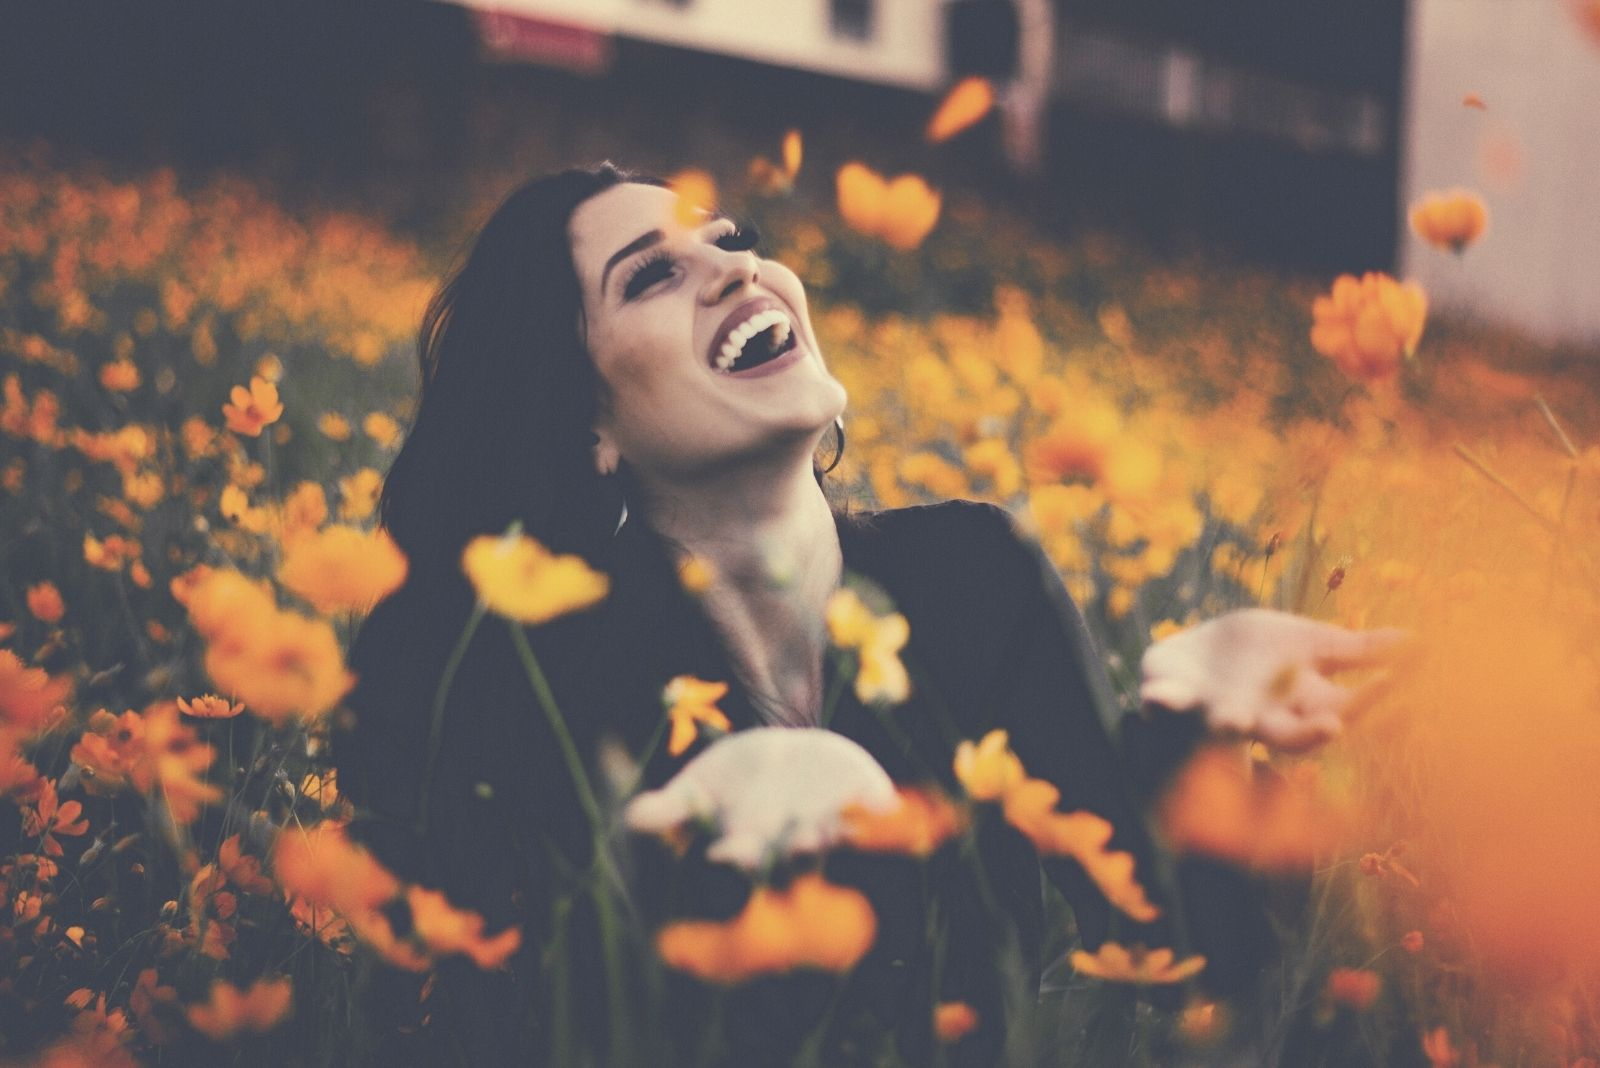 happy woman in flower field playing with orange petal flowers